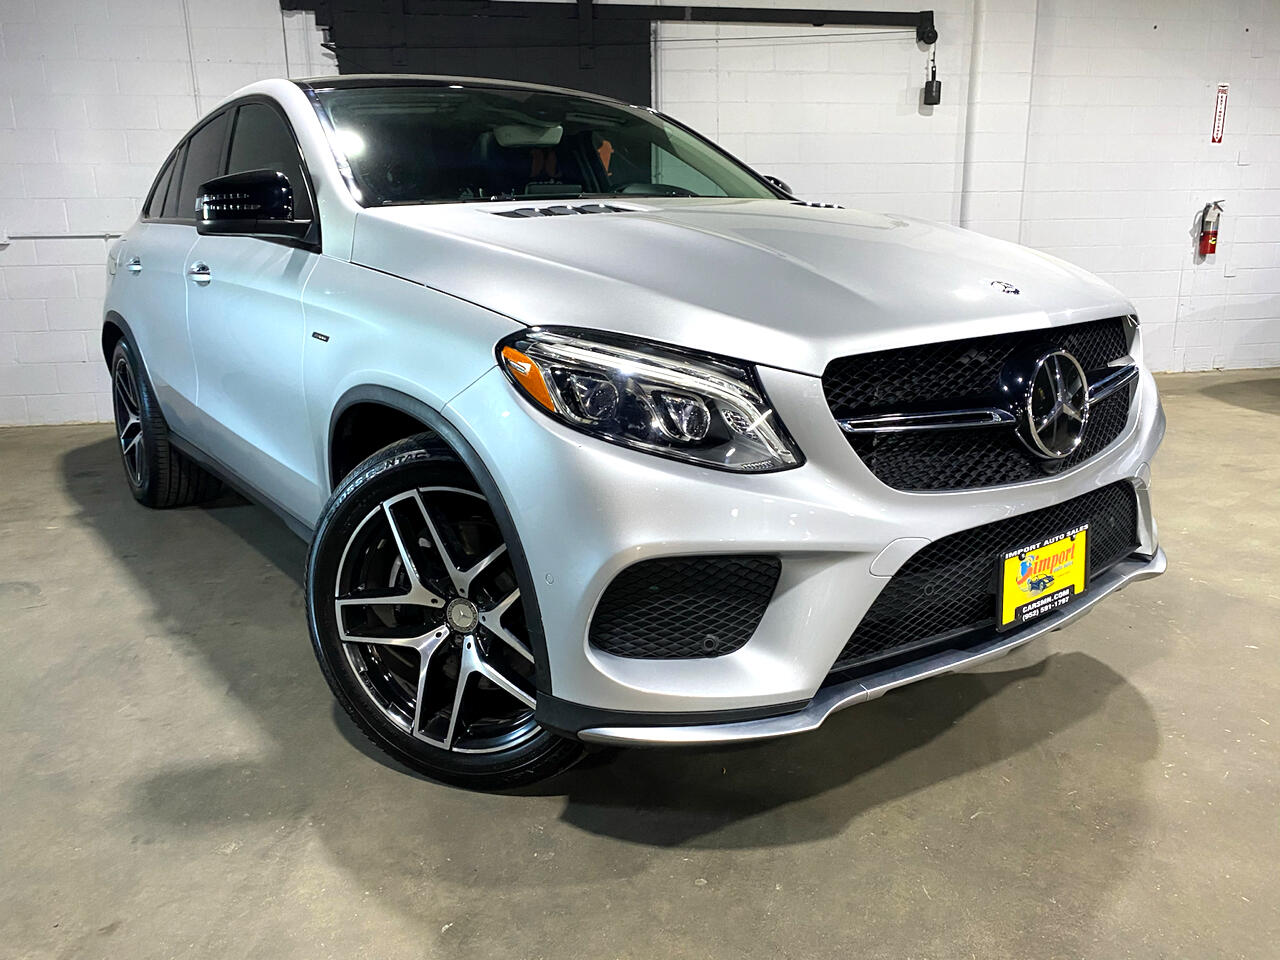 Mercedes-Benz GLE 4MATIC 4dr GLE 450 AMG Cpe 2016